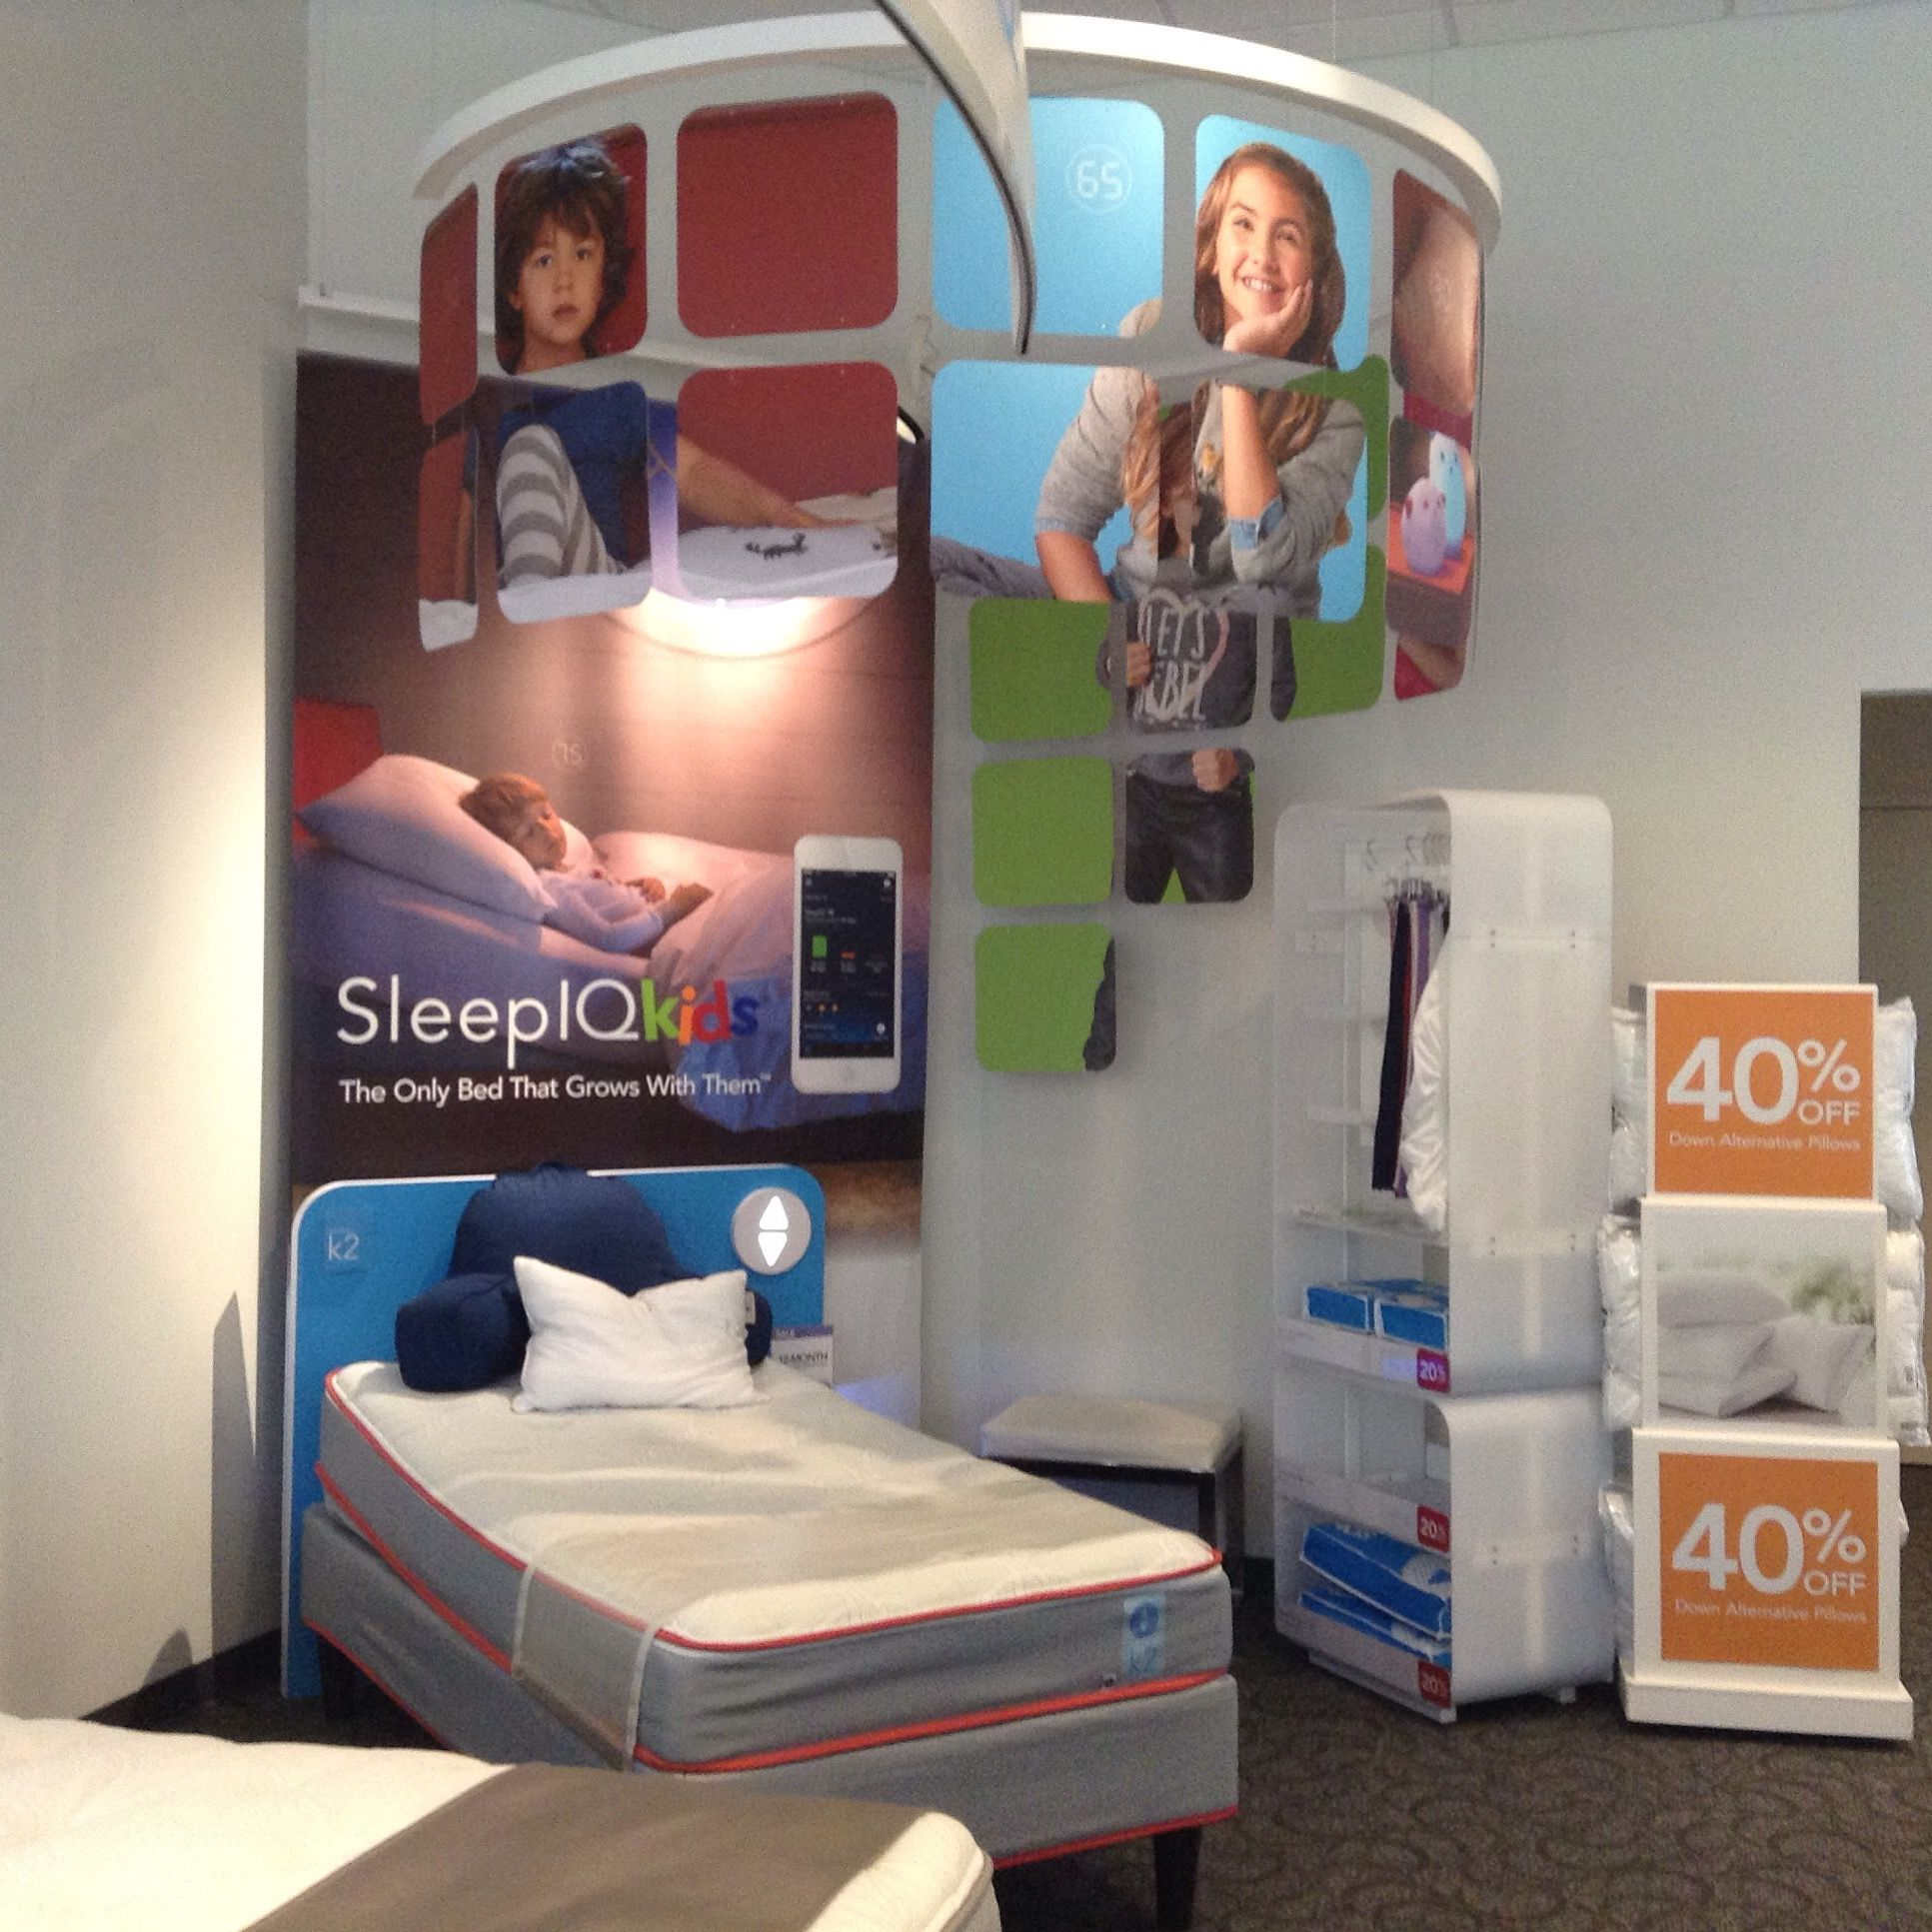 stopthestall sleep number iq kids bed is pretty awesome received a